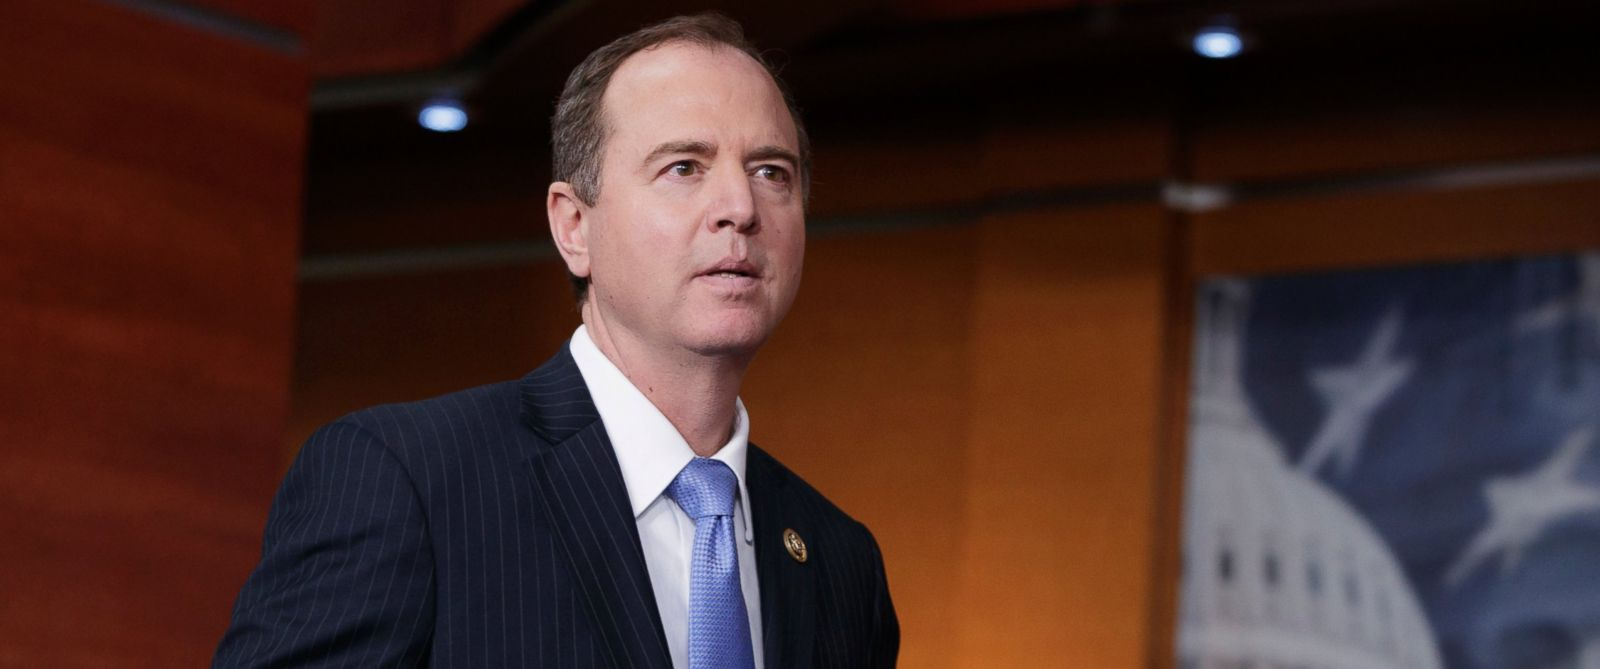 PHOTO: Rep. Adam Schiff, ranking member of the House Intelligence Committee, arrives to meet with reporters, Feb. 27, 2017, on Capitol Hill in Washington.